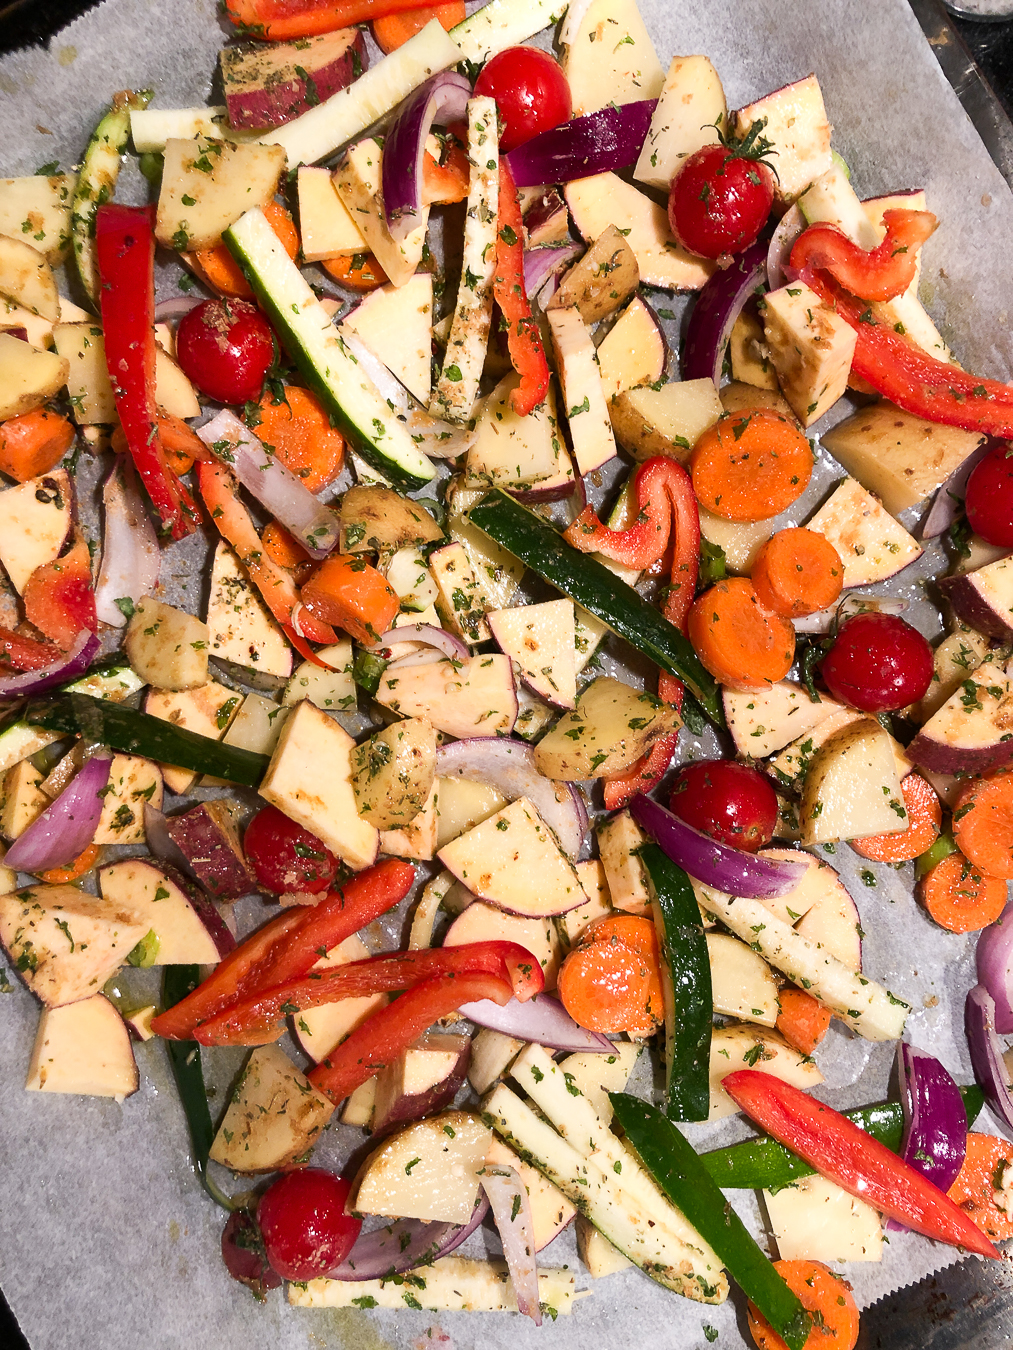 Read more about the article Veggie traybake, EAT THE RAINBOW